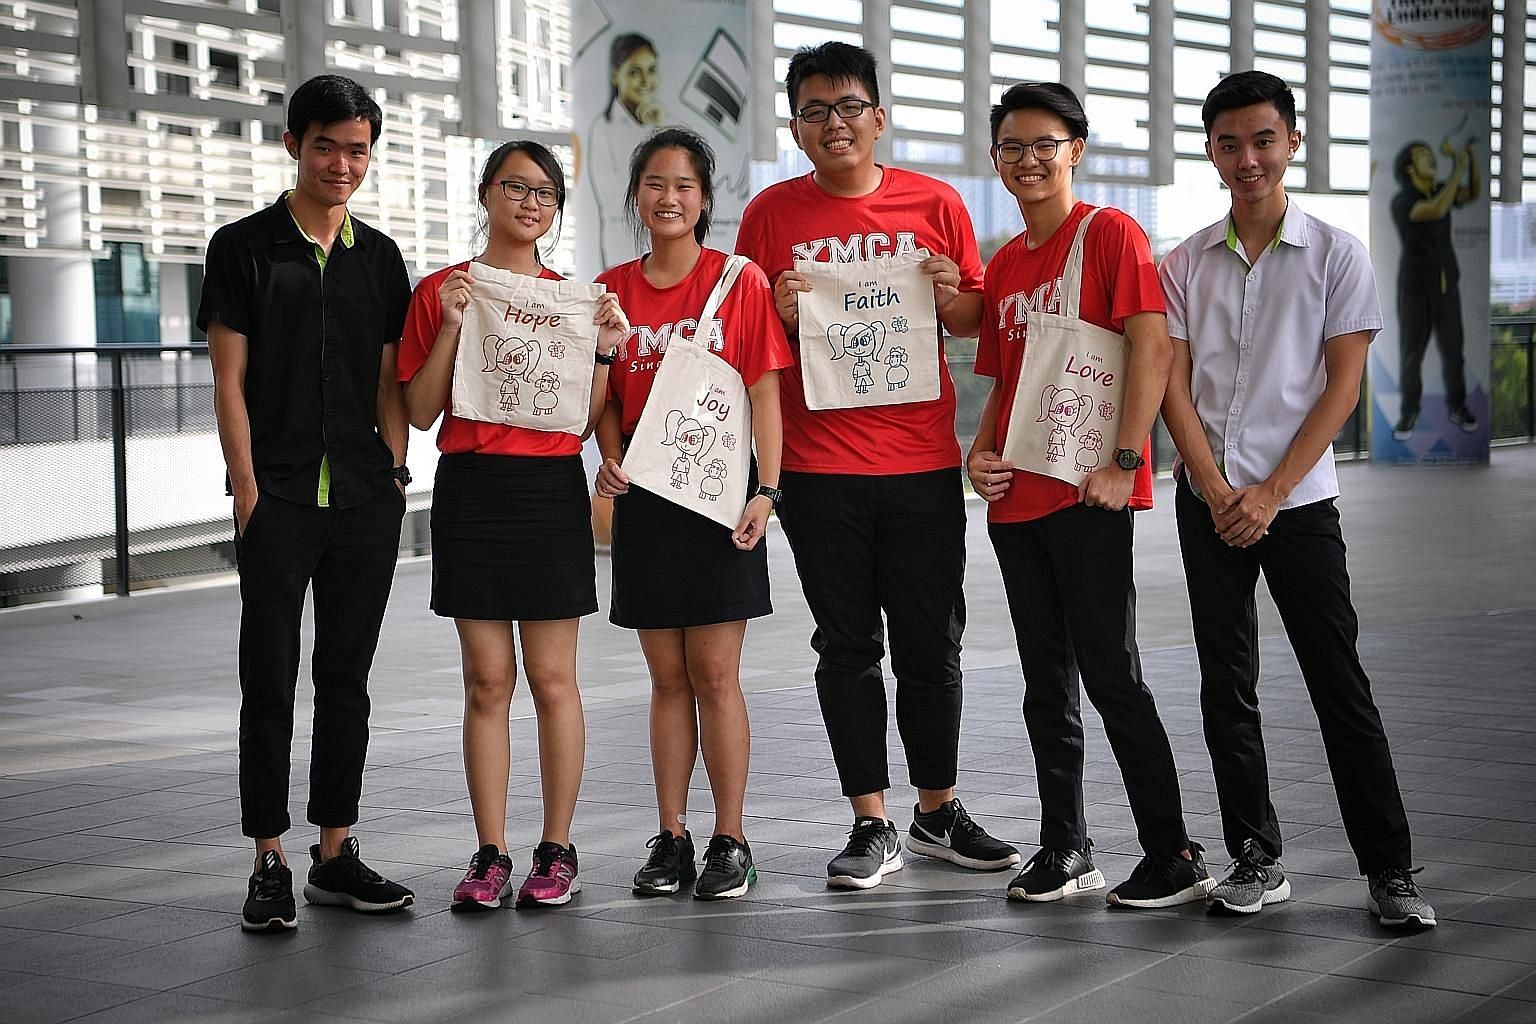 The EduTomahawk team (in red T-shirts) comprising ITE students (from second from left) Gan Shi Ying, 18; Cheryl Ee, 18; Tan Jia Shun, 19; and Josh Ang, 19, with samples of the tote bags they sold to raise funds for underprivileged children from Canos